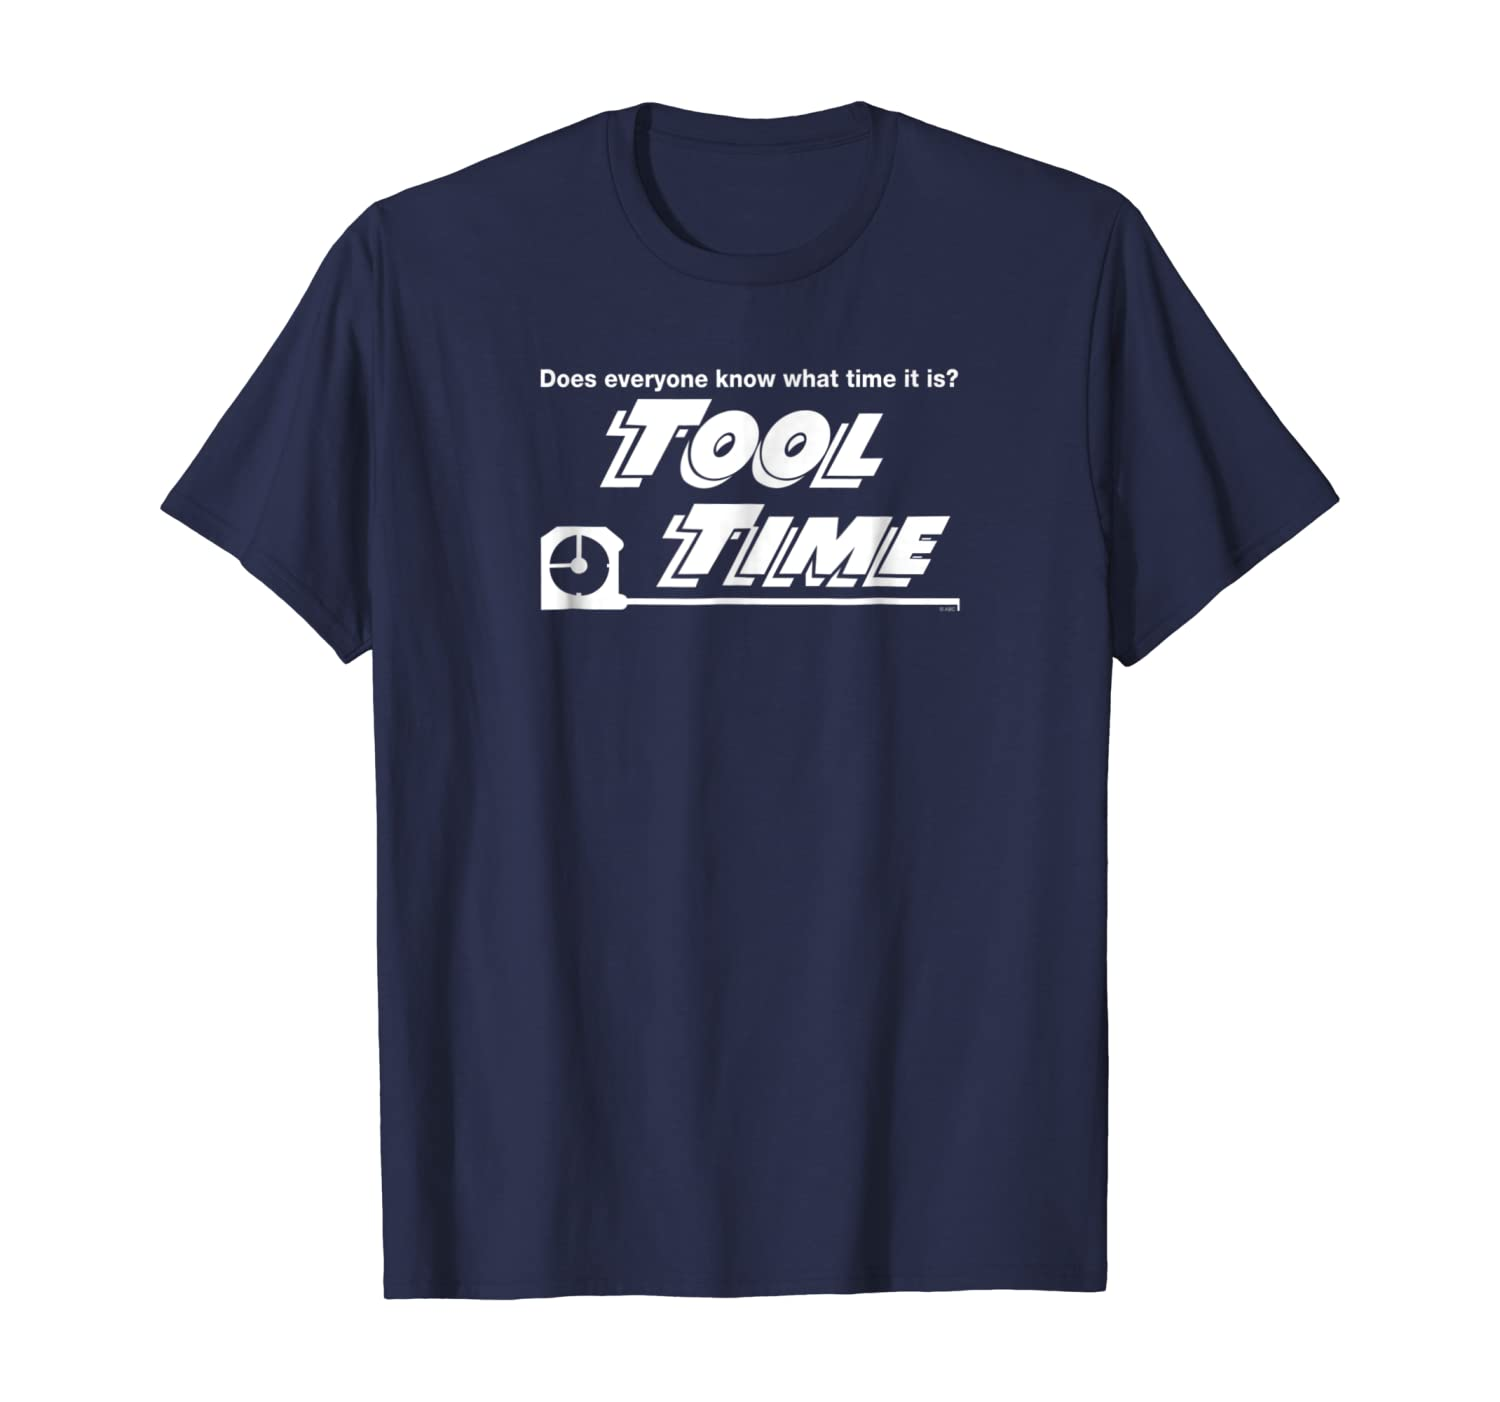 Home Improvement Does Everyone know what Time it is? T-shirt